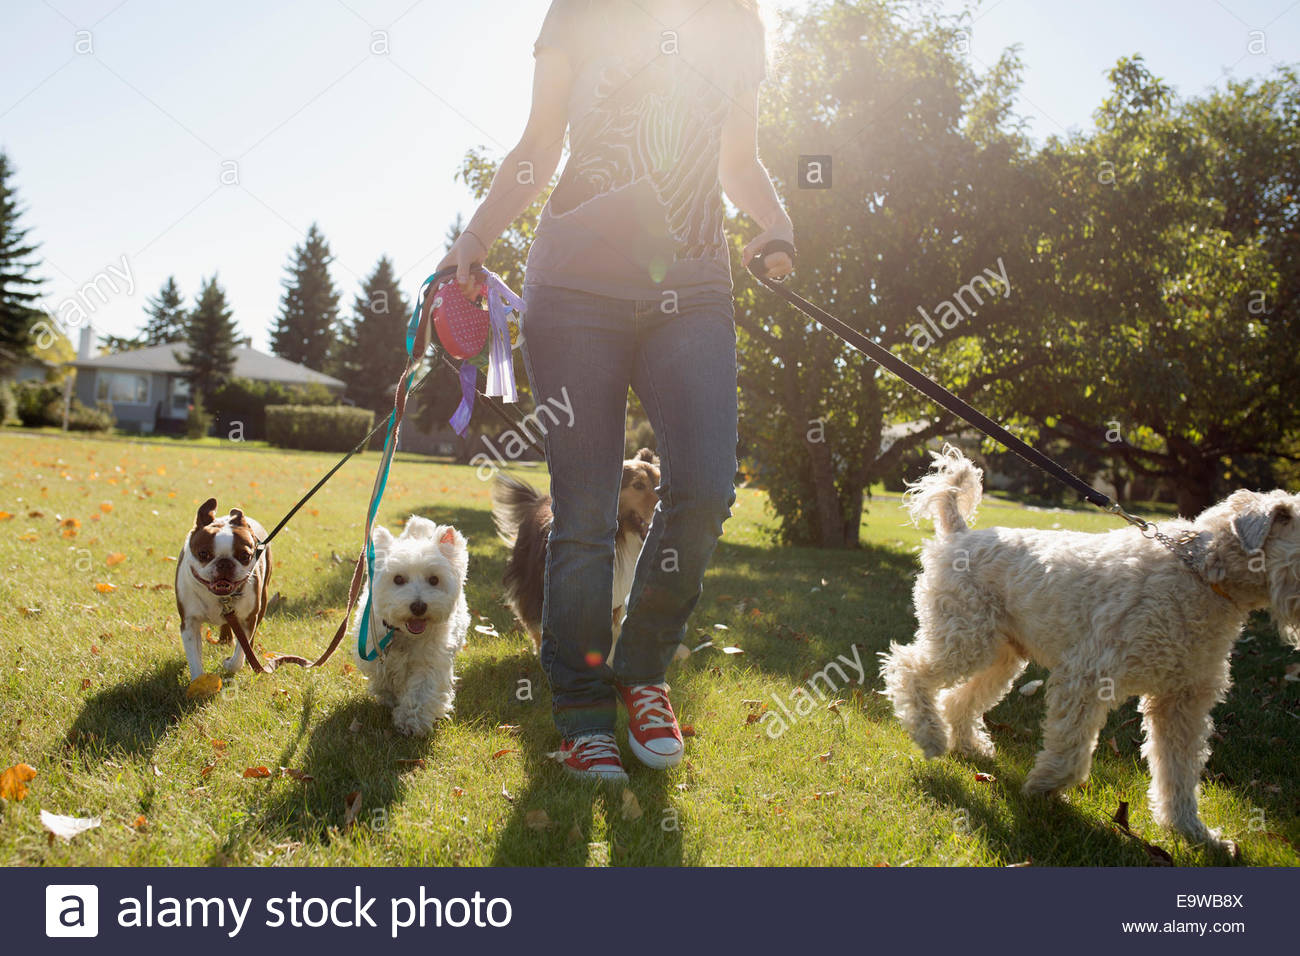 Woman walking dogs in sunny park Photo Stock